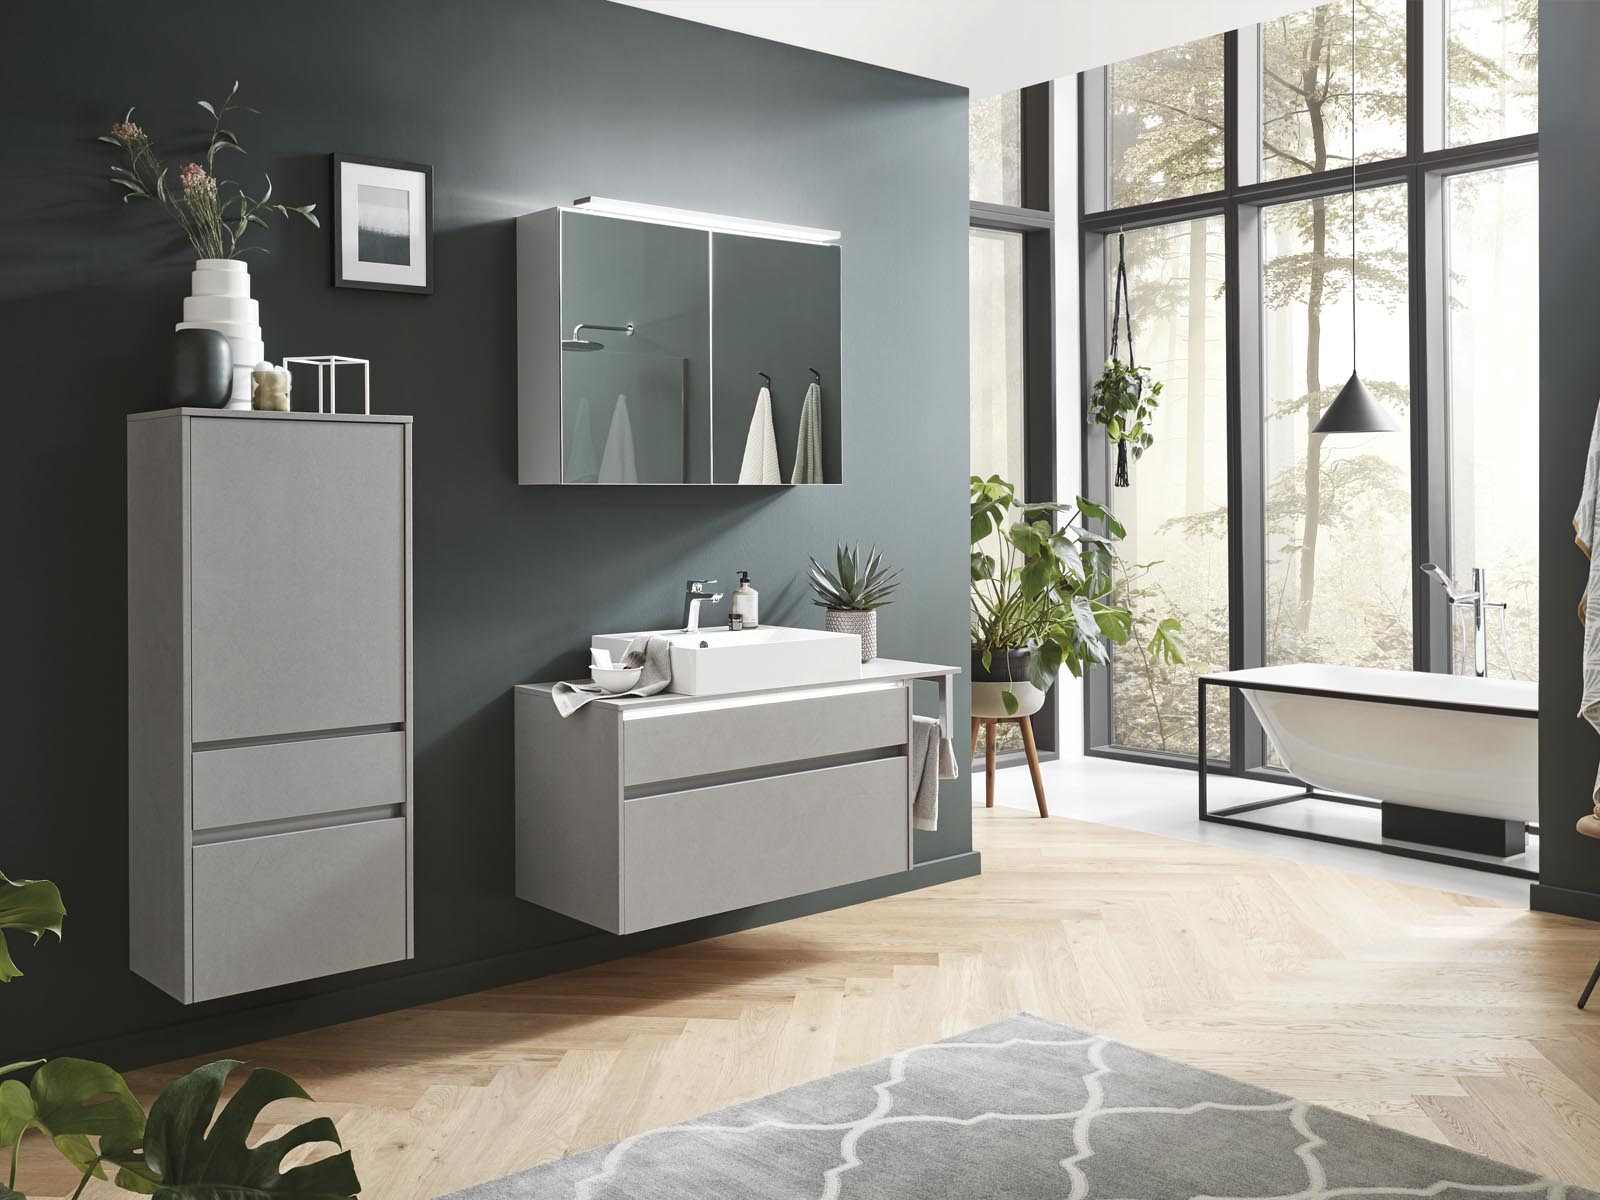 Küchentime Cemento 803 - Bathroom